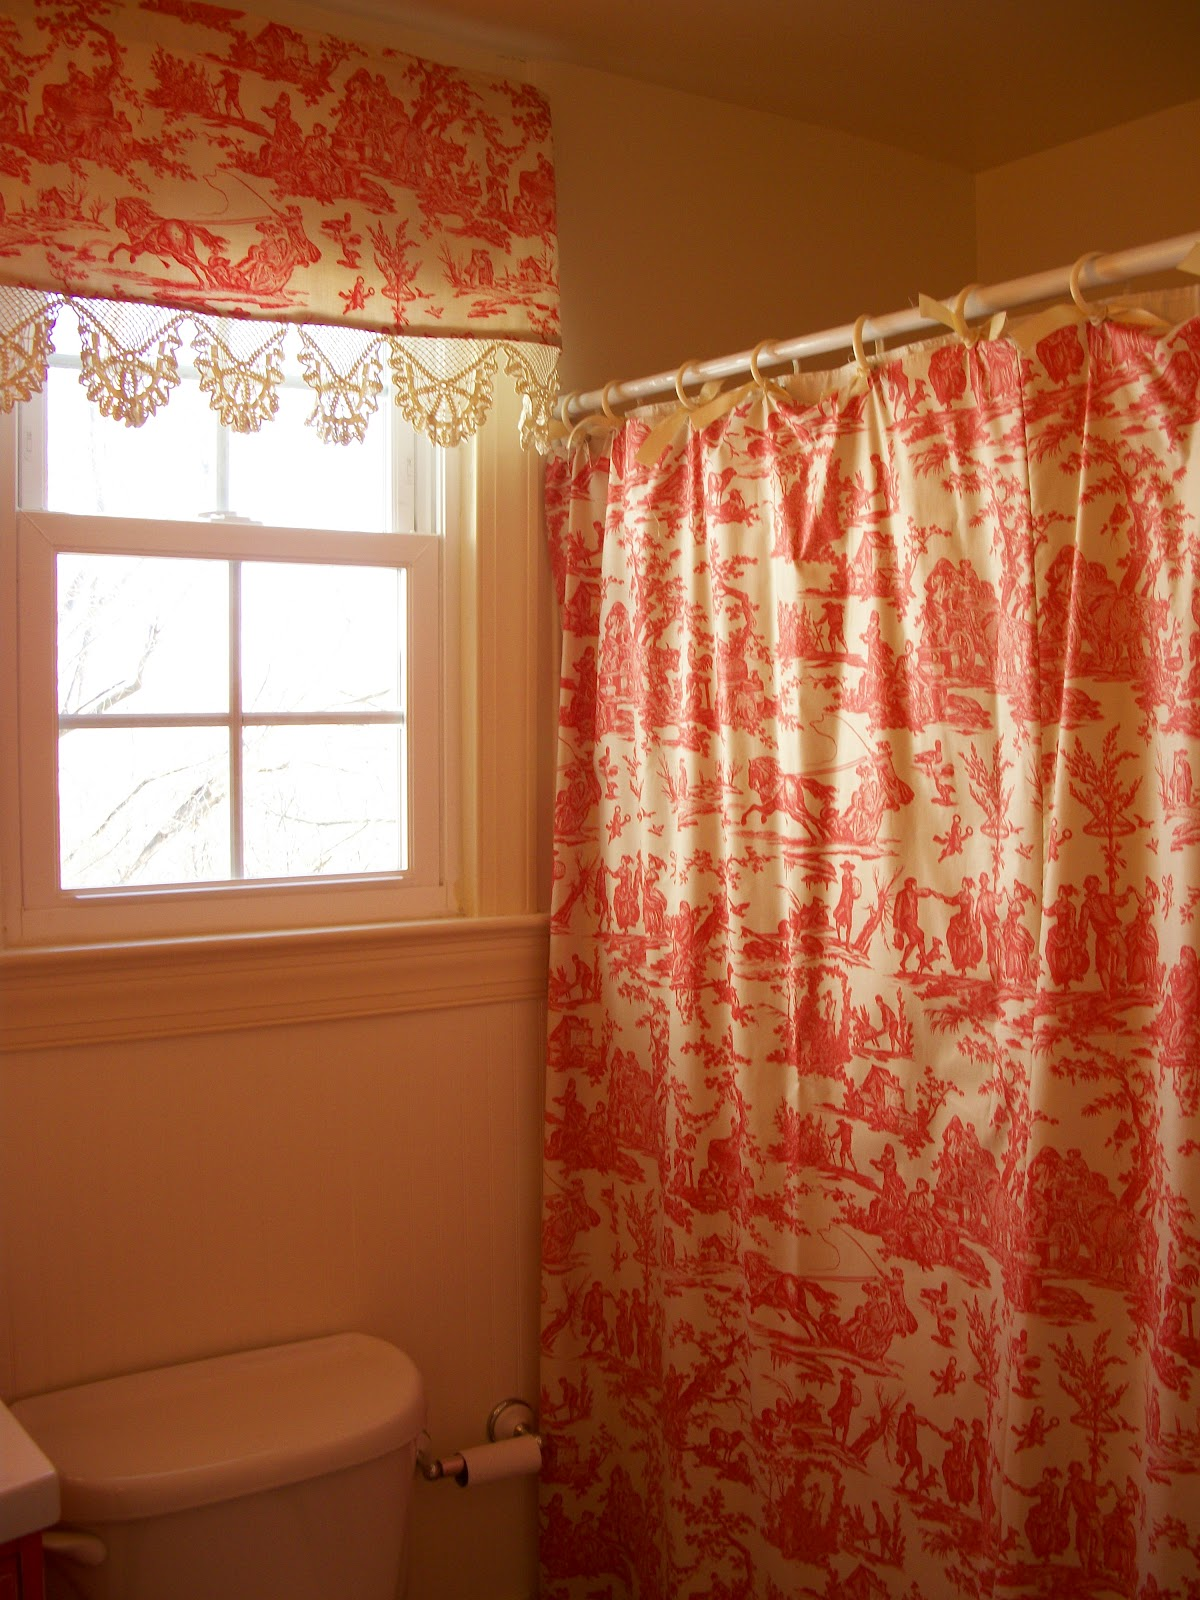 French country on pinterest toile provence france and for Bathroom window curtains